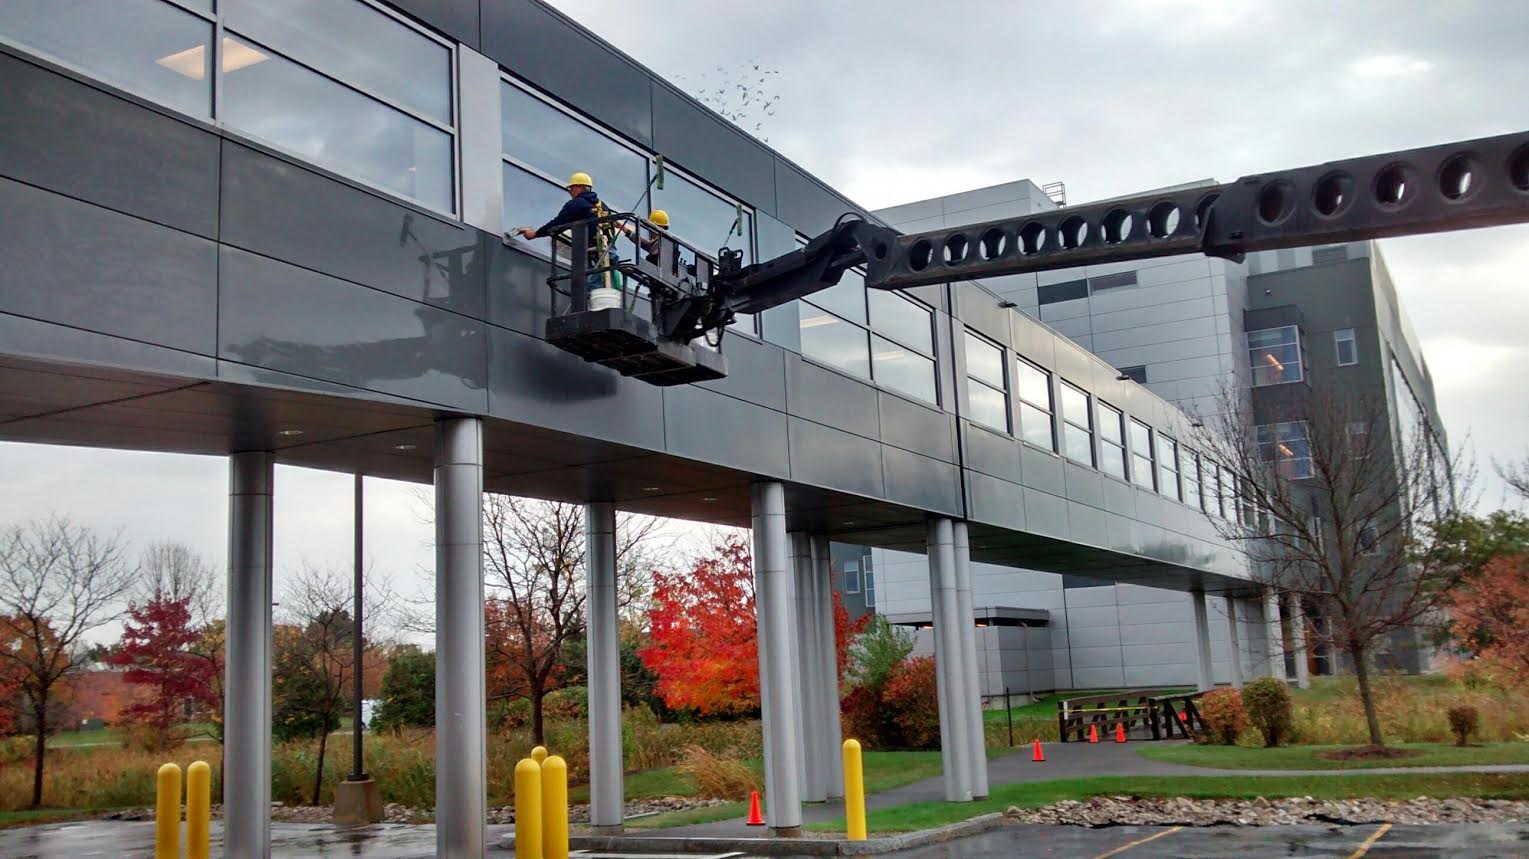 Window Cleaning on a pedestrian bridge that spans a canal.